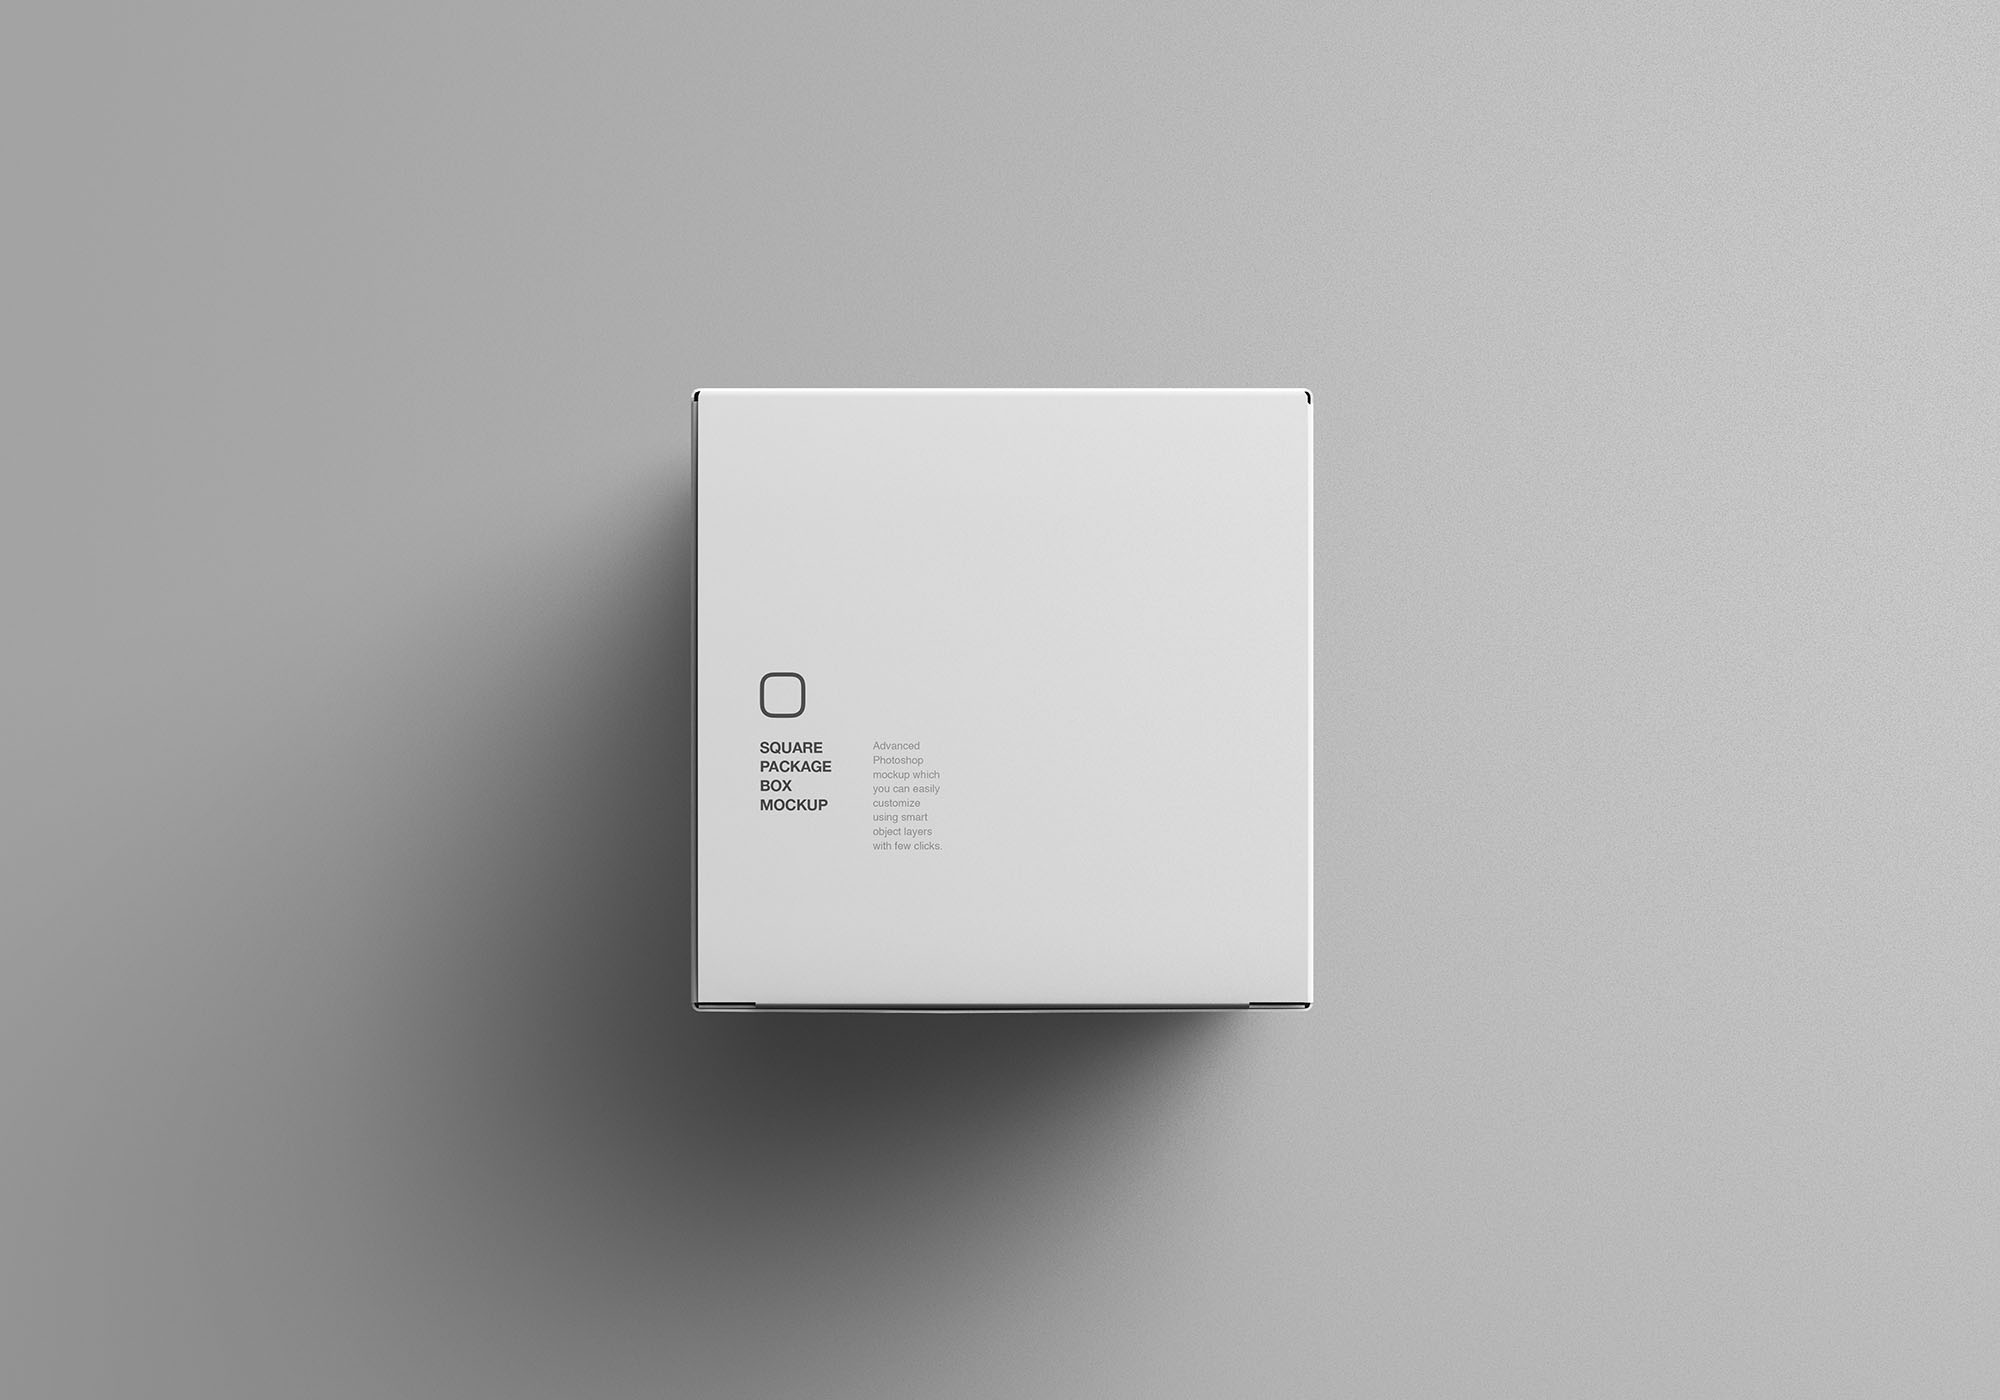 Square Package Box Mockup 4